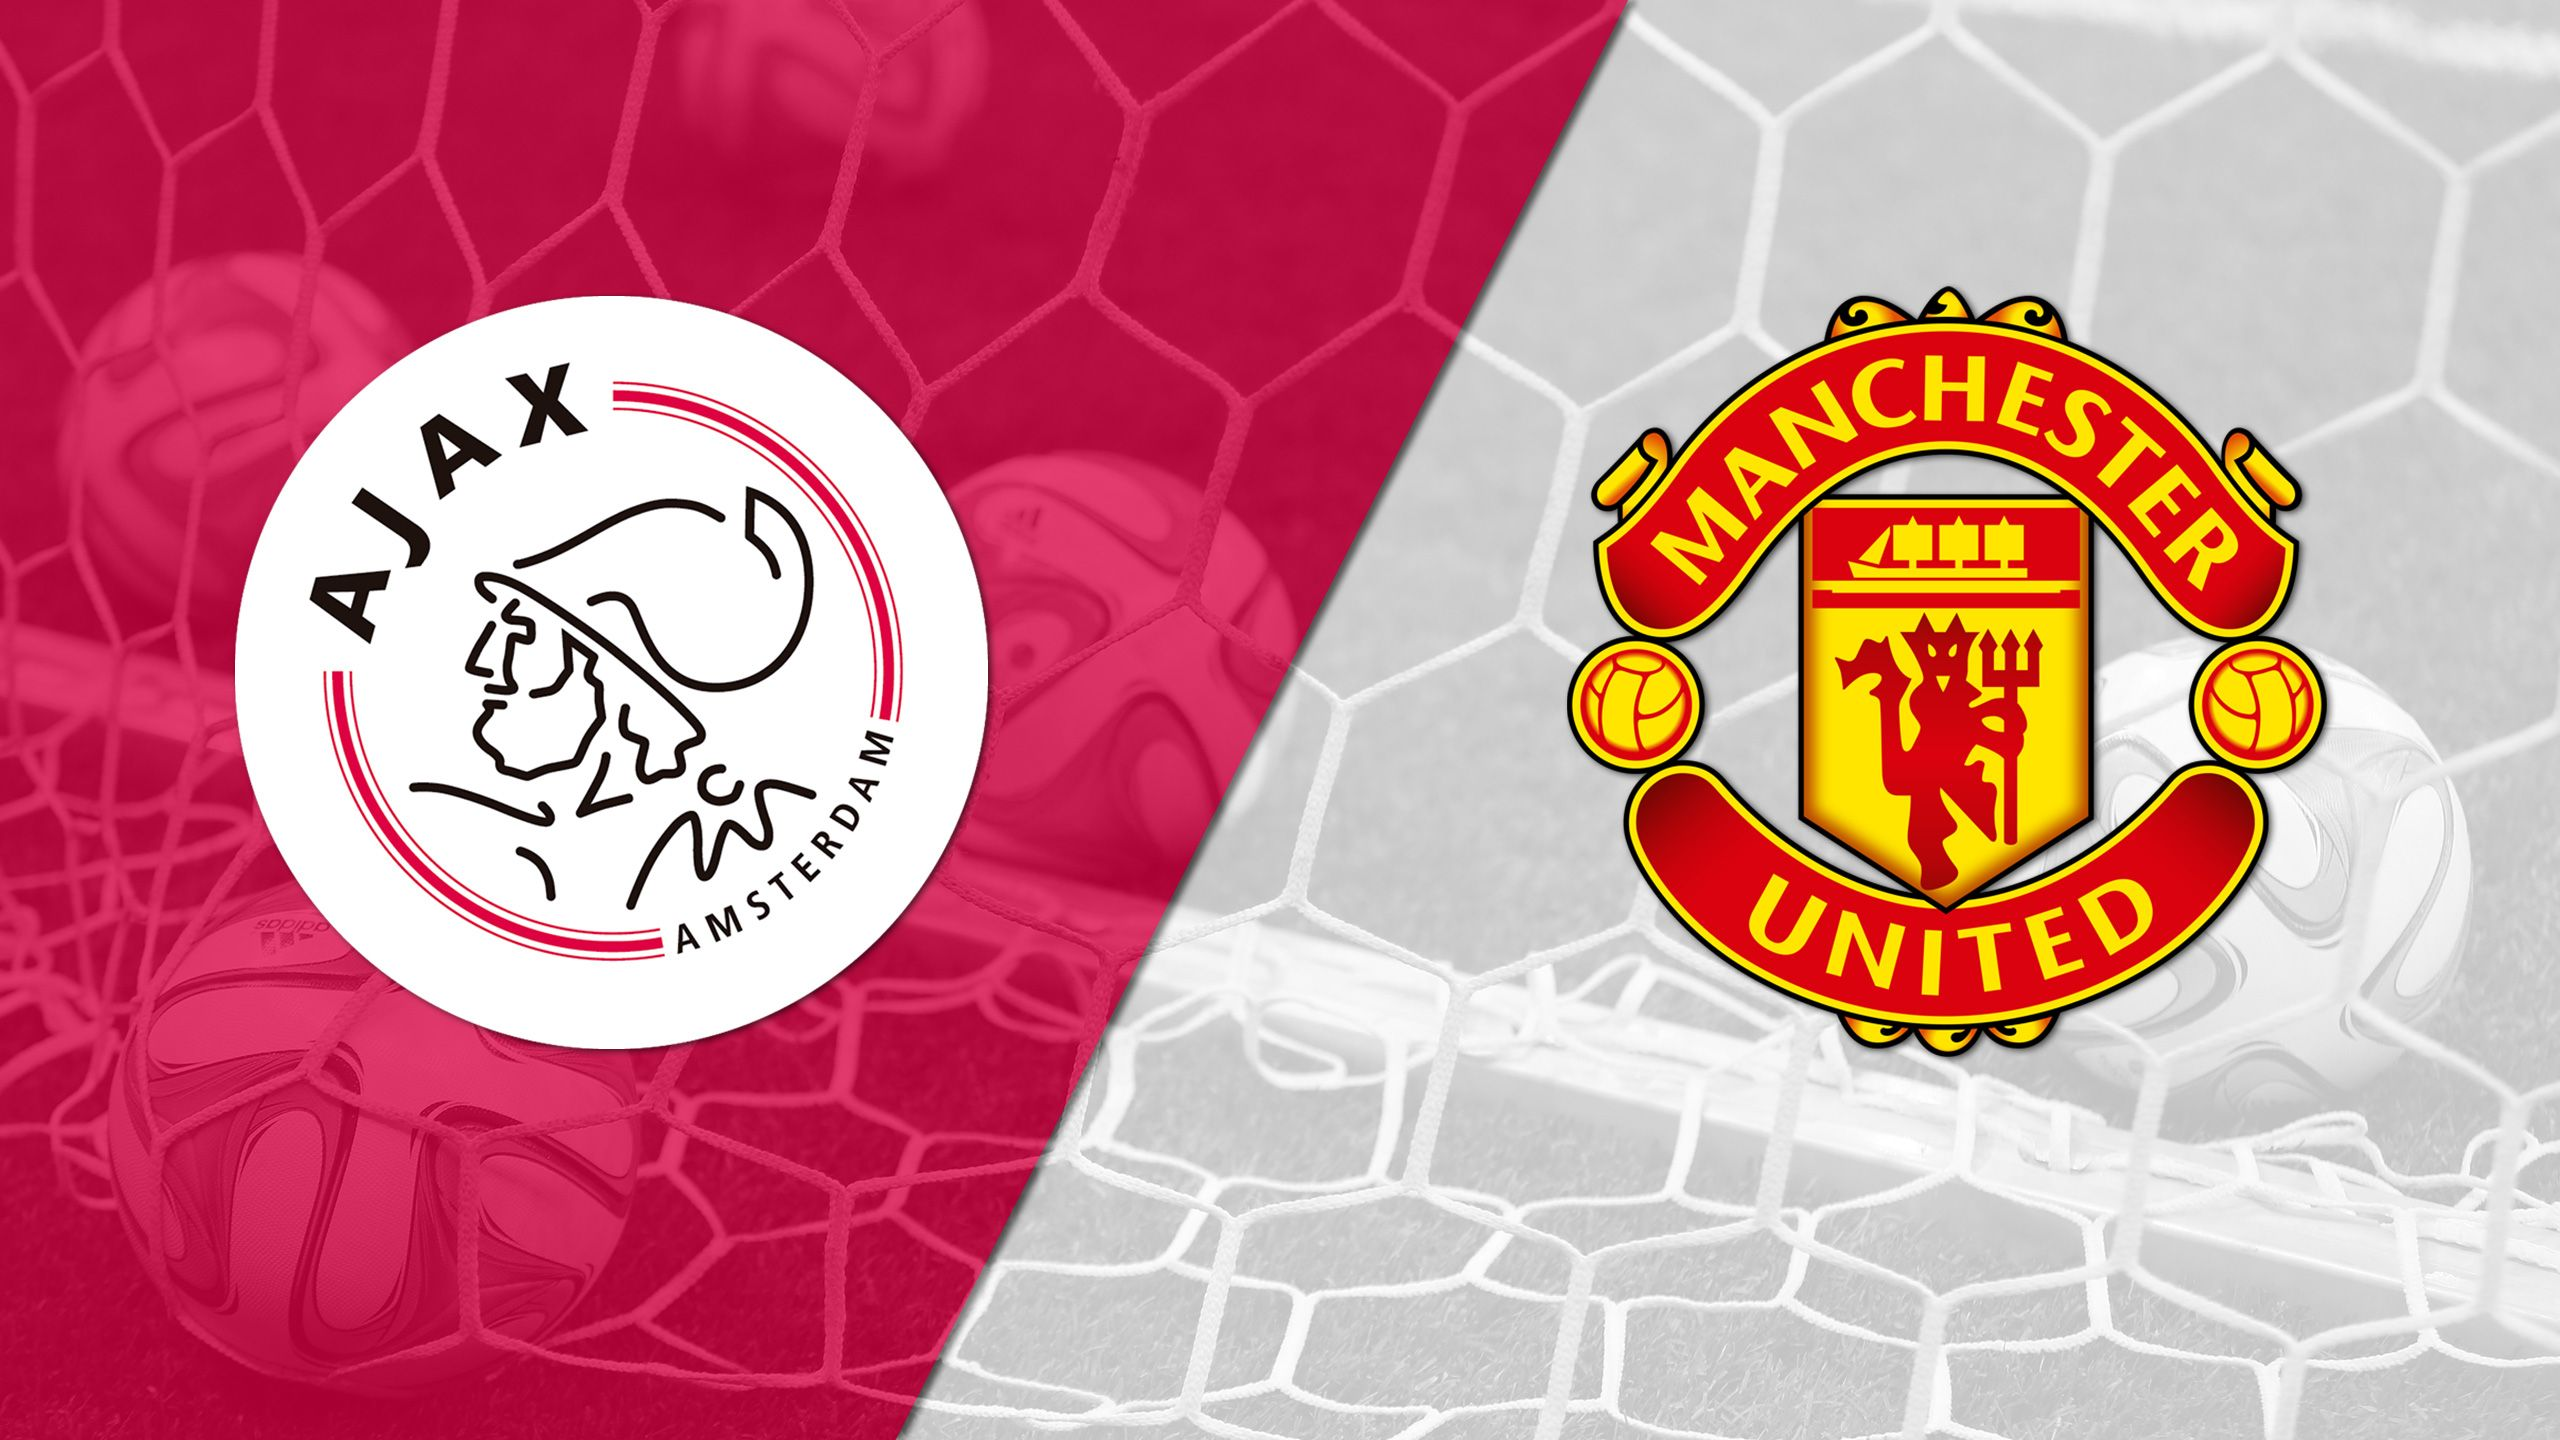 In Spanish - Ajax vs. Manchester United (Final) (UEFA Europa League)